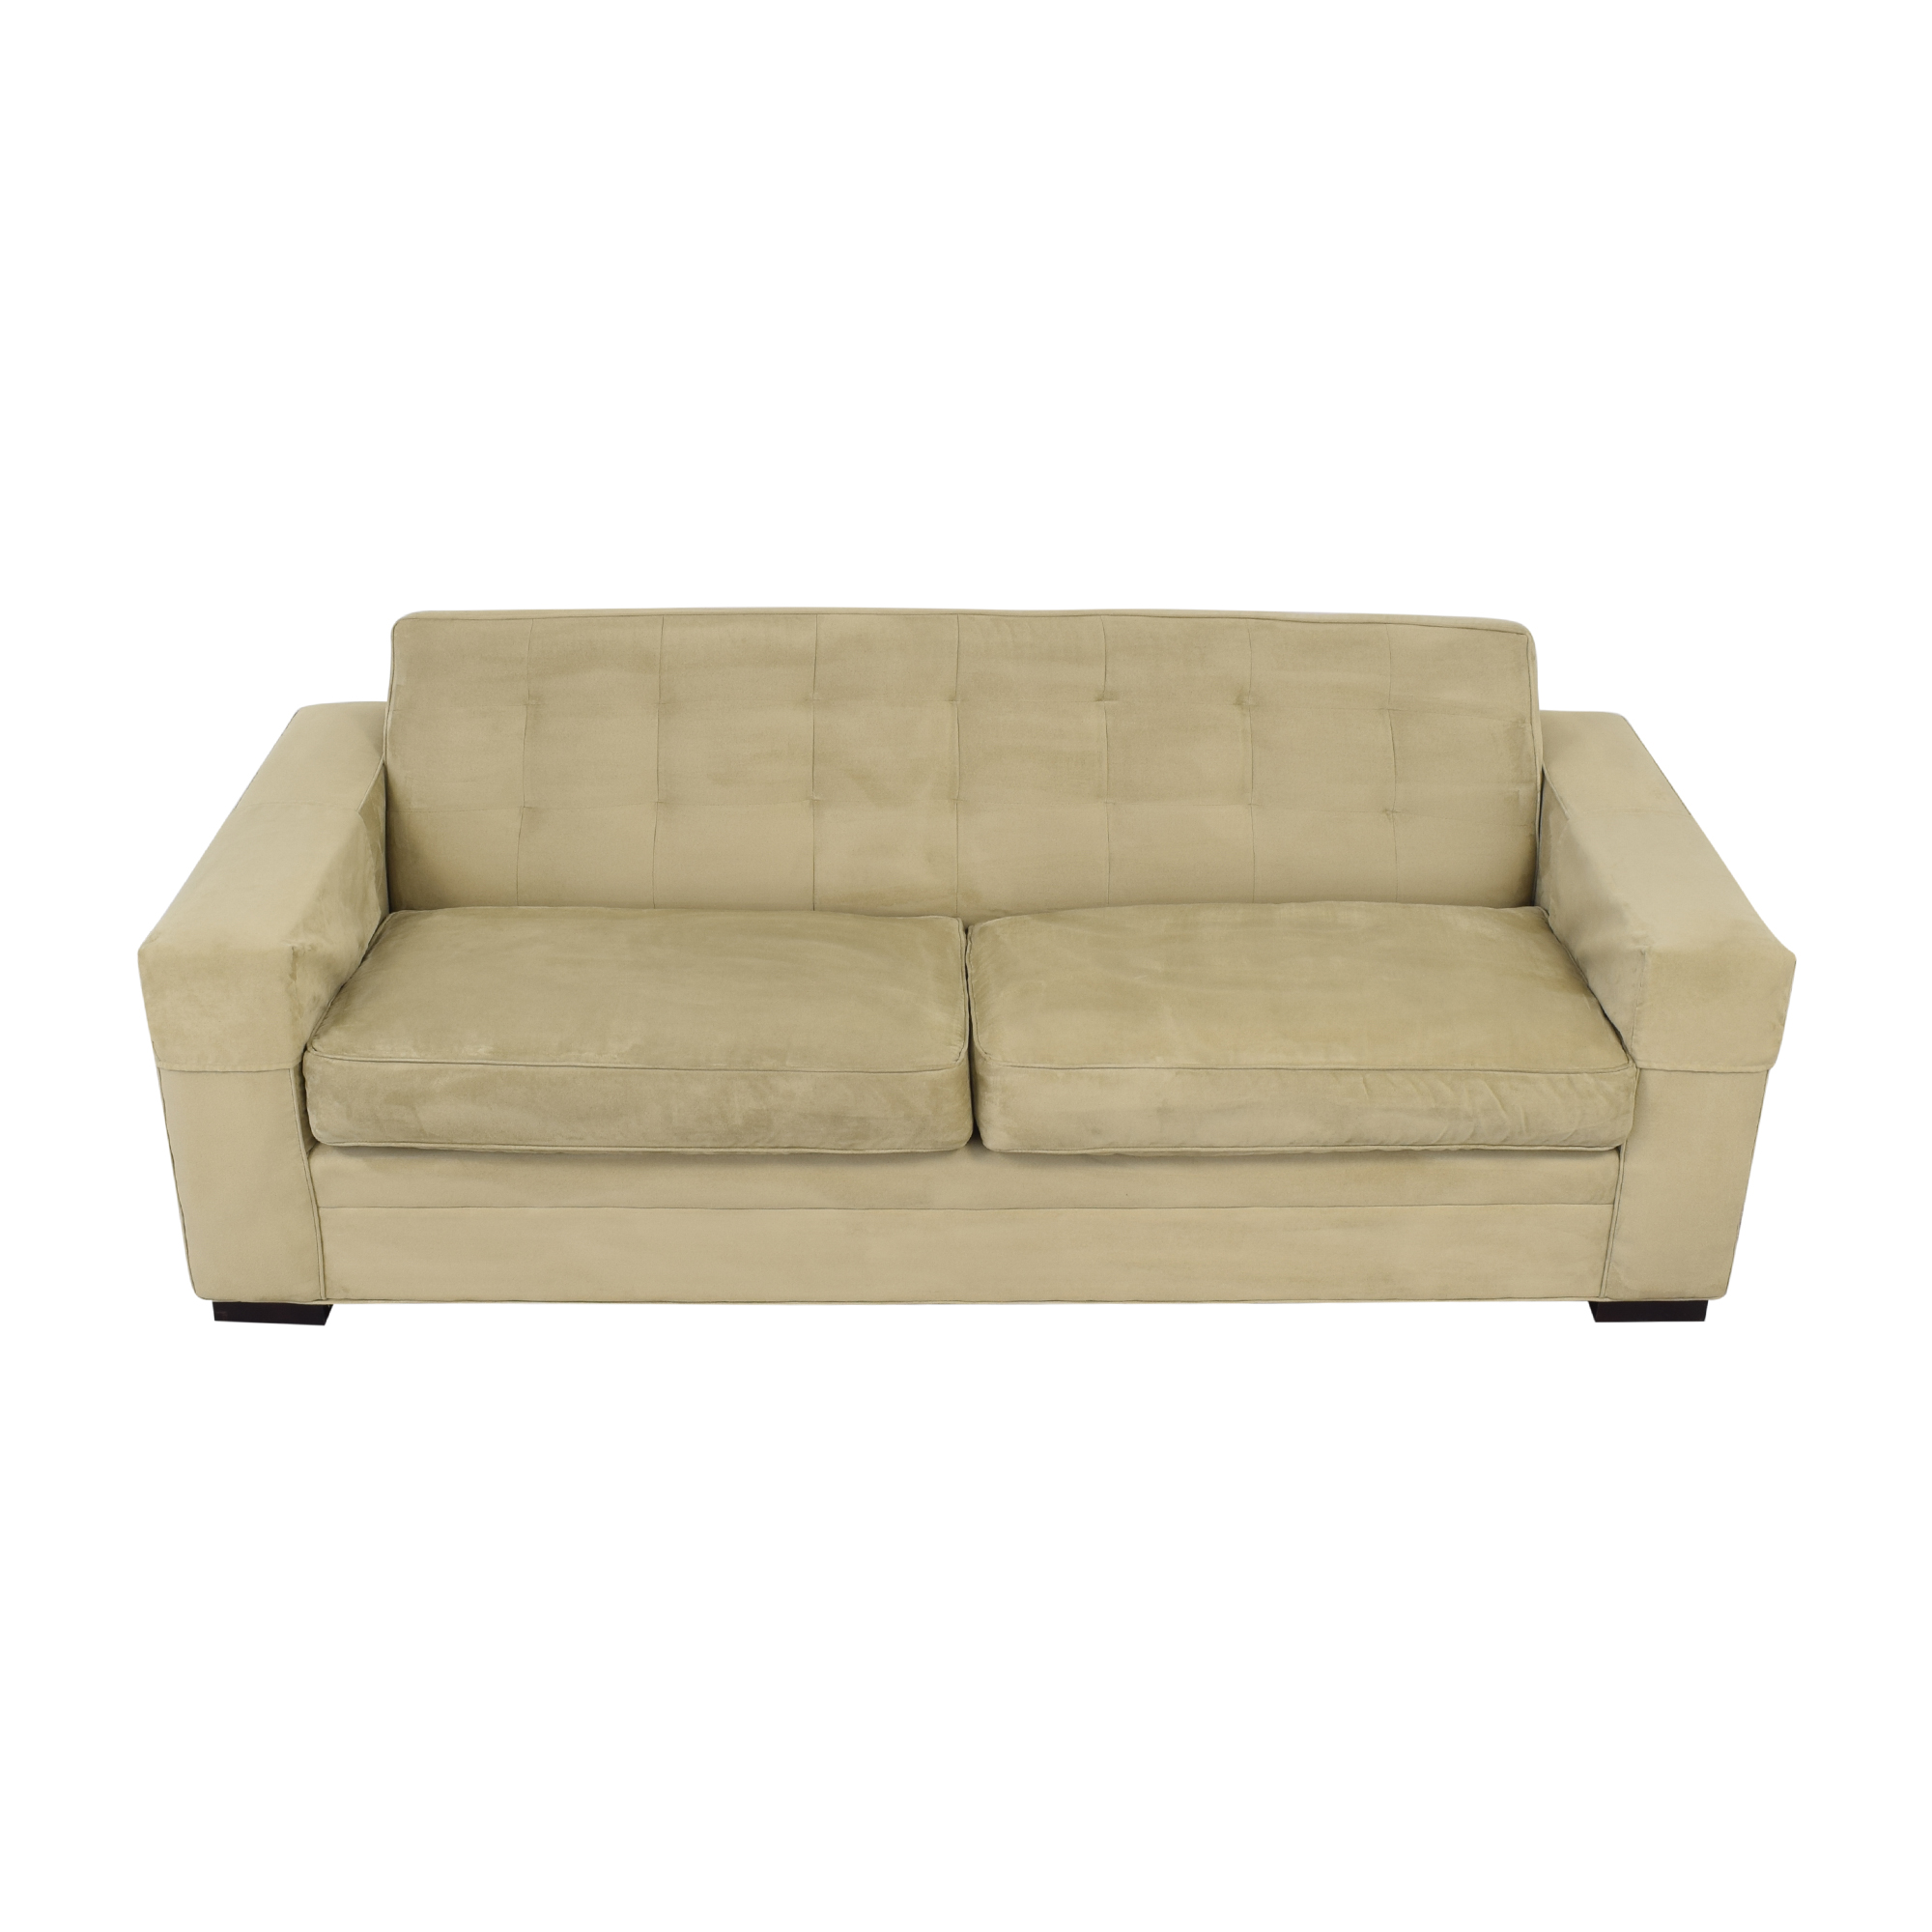 Mitchell Gold + Bob Williams Mitchell Gold Gabriel Sofa pa